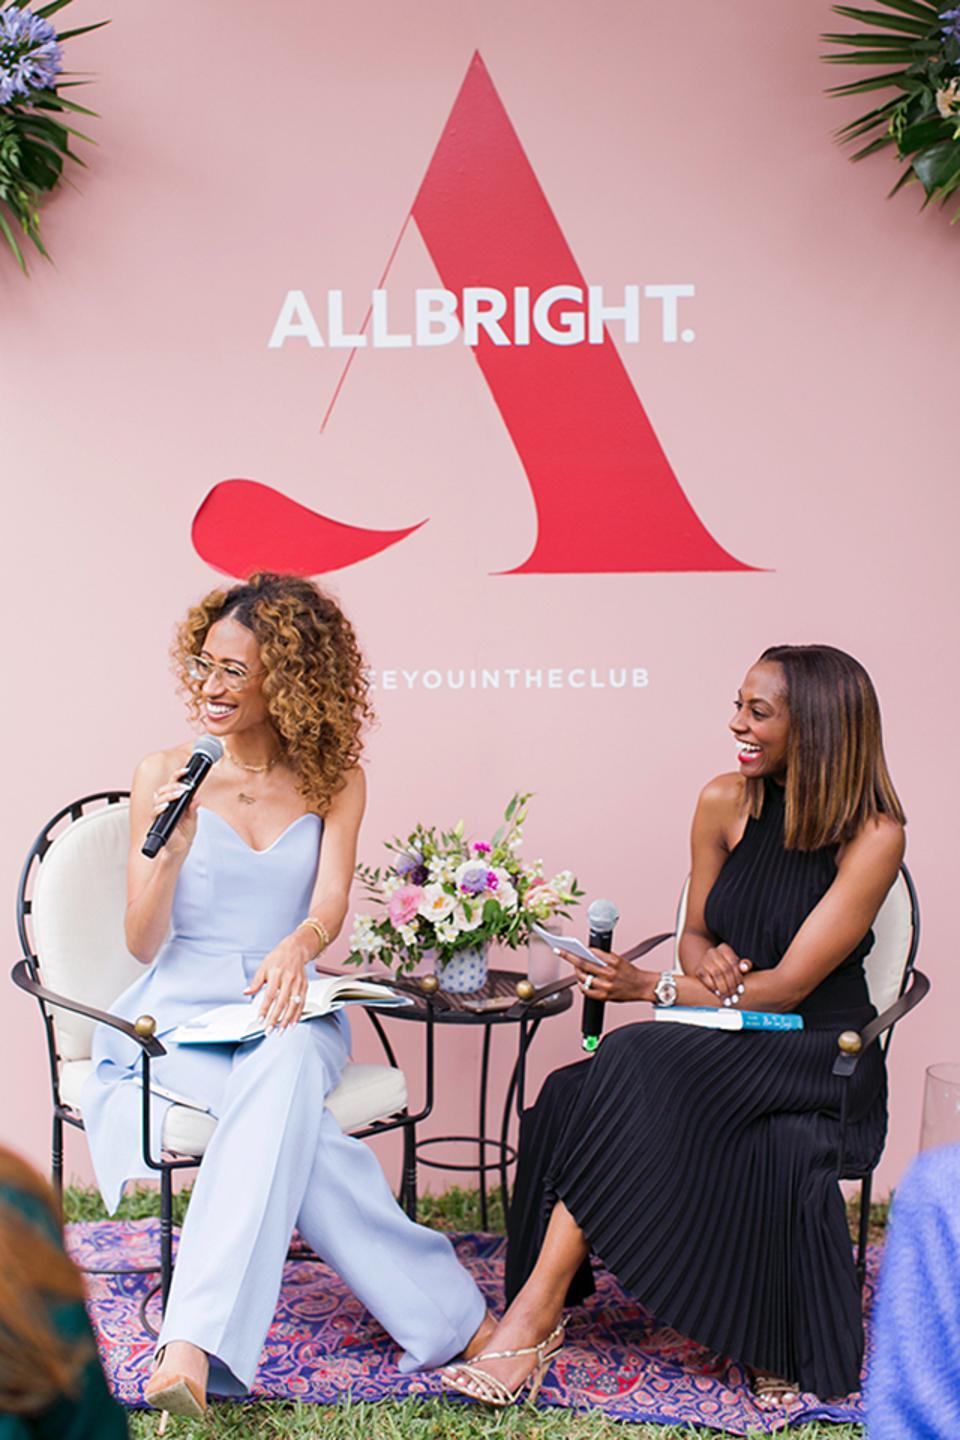 Elaine Welteroth speaking at the AllBright Backyard Series